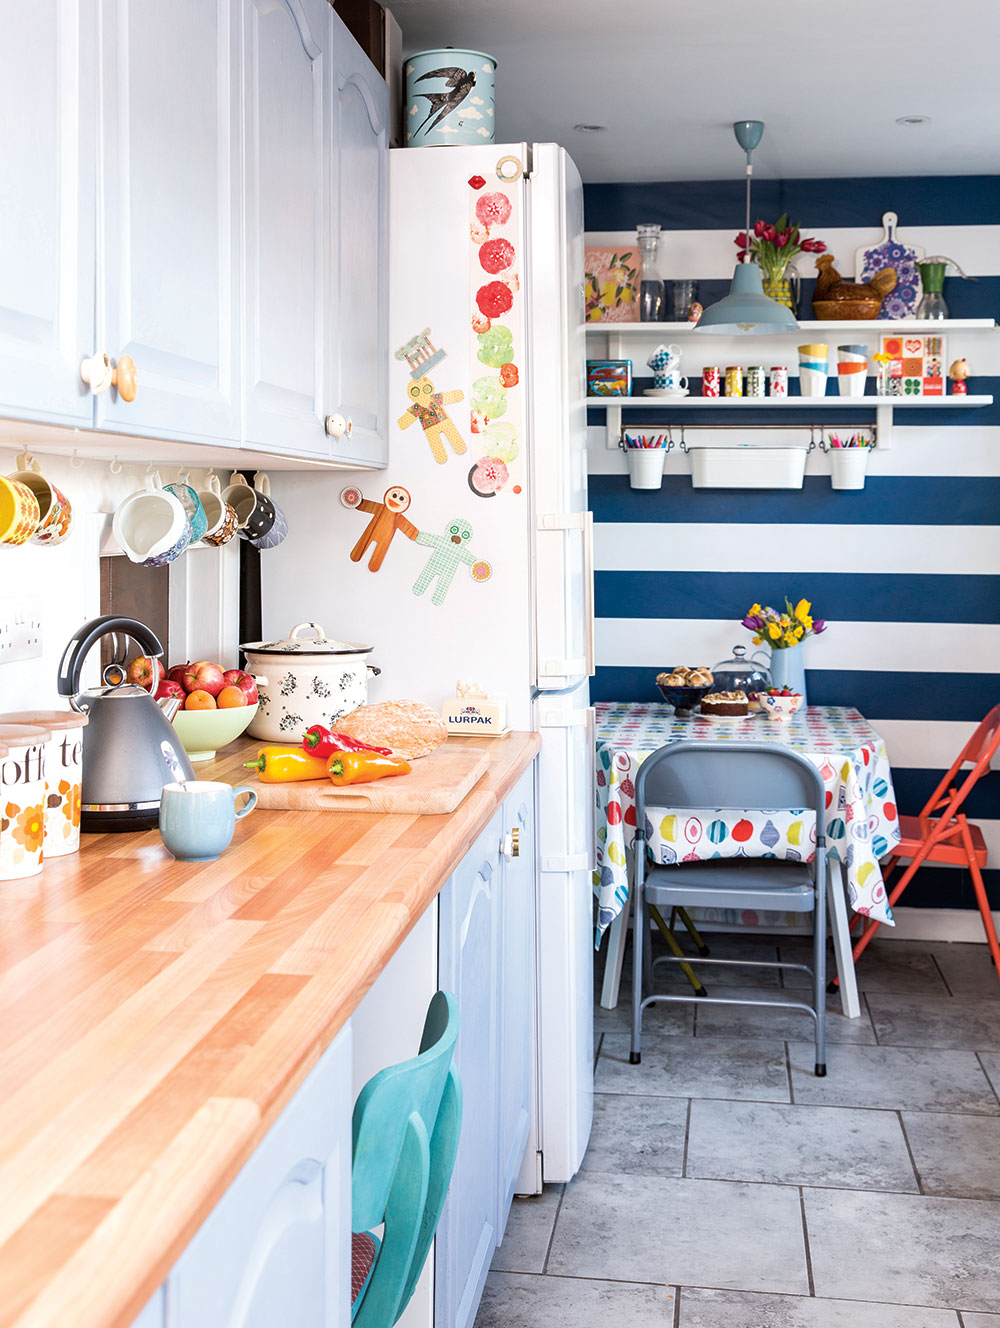 Our Kitchen by Lizzie Orme for Your Home